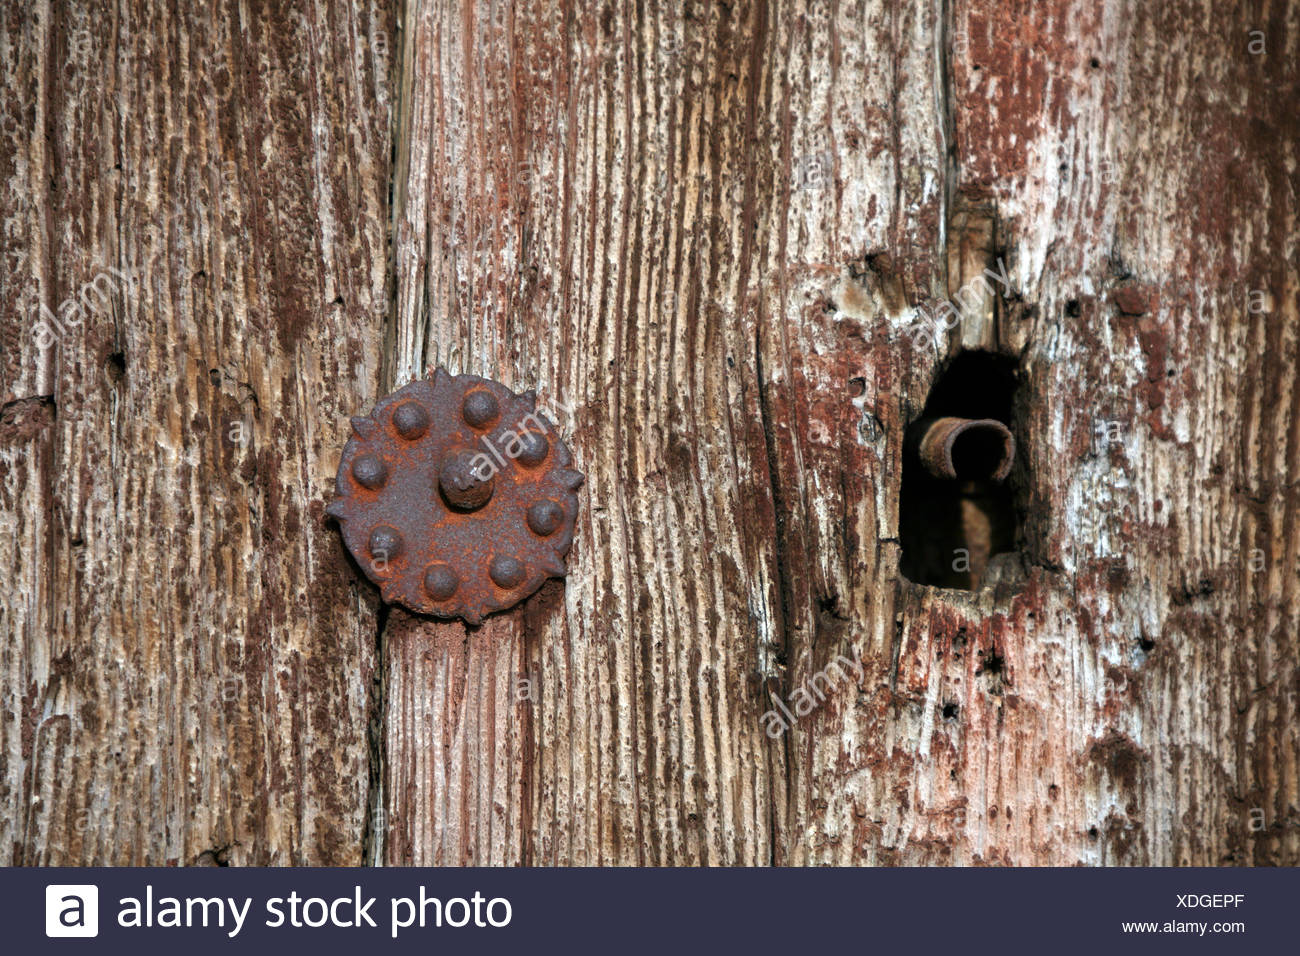 lock wood antique door andalusia keyhole metal fittings cordoba structure  old - Lock Wood Antique Door Andalusia Keyhole Metal Fittings Cordoba